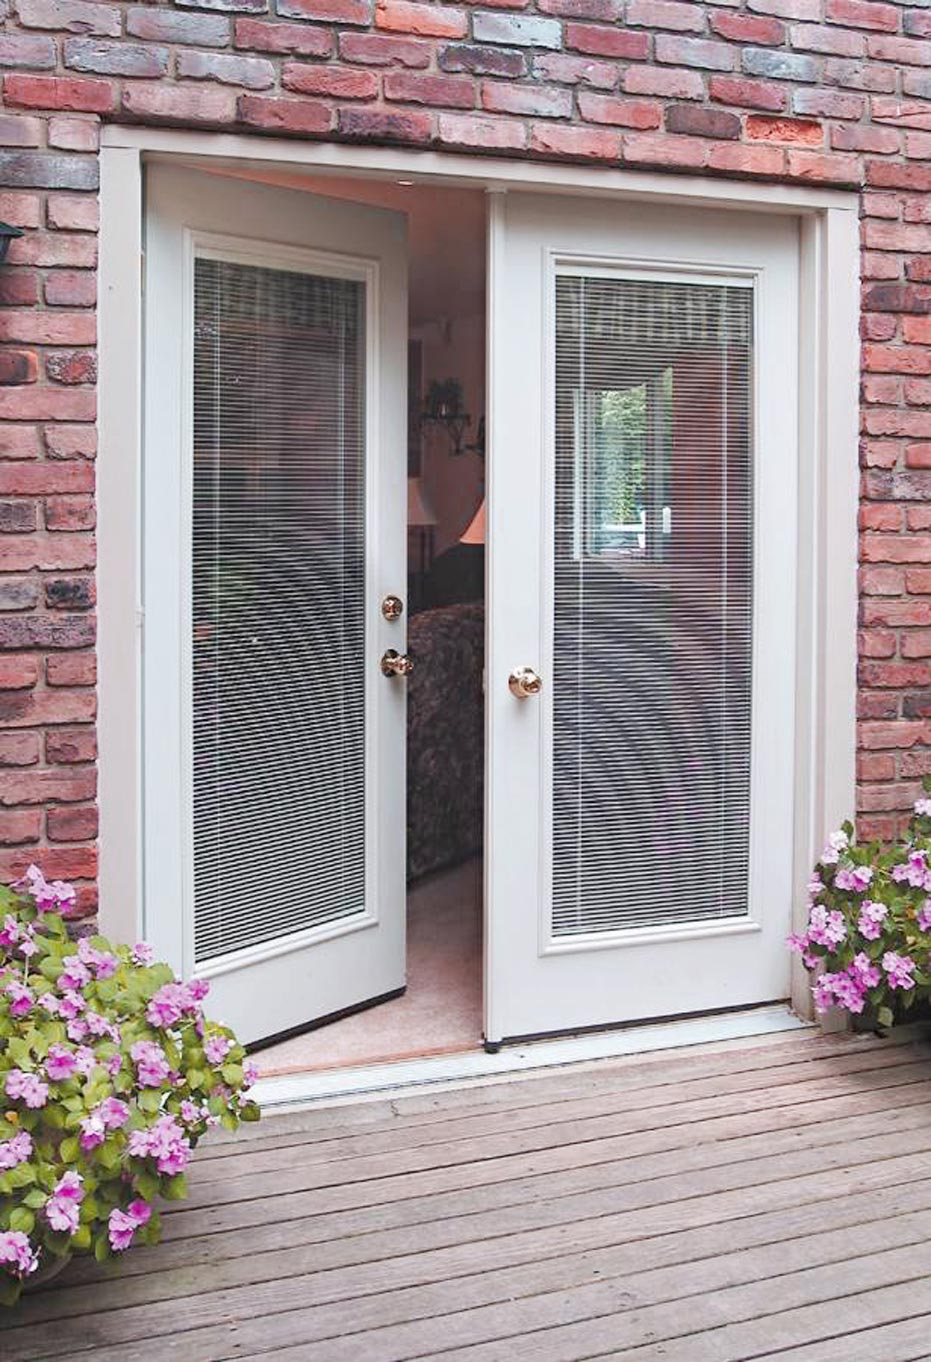 French patio doors with built in blinds 7 spotlats for Best french patio doors